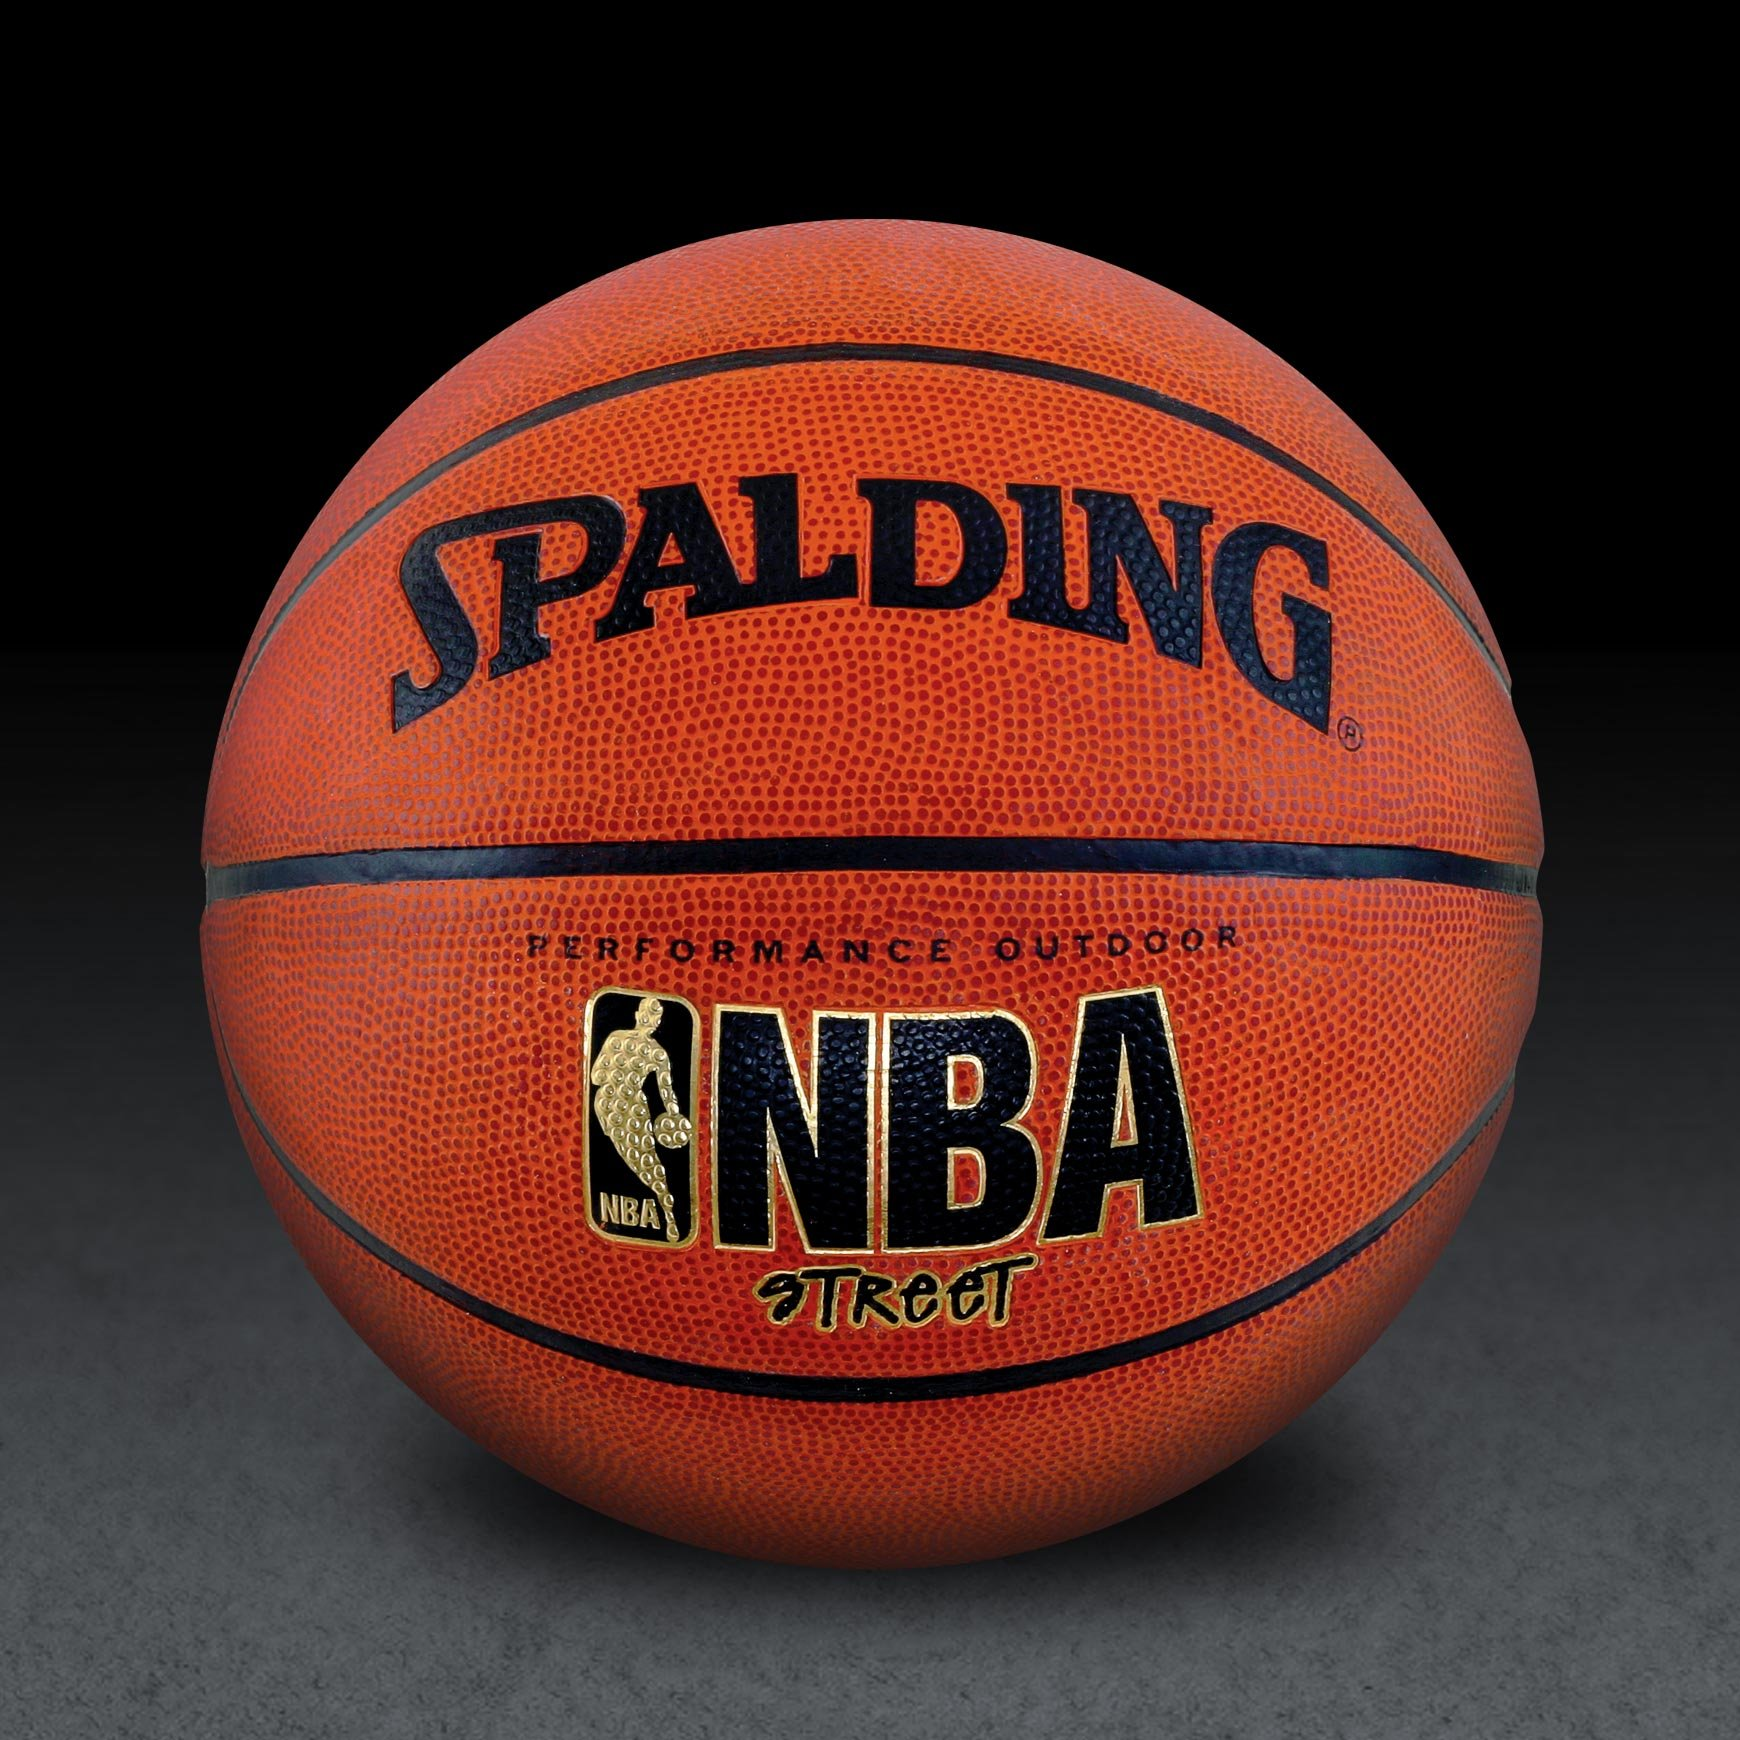 i like to play basketball essay Play basketball like a pro: key skills and tips (play like the pros (sports illustrated for kids)) [nate leboutillier] on amazoncom free shipping on qualifying.